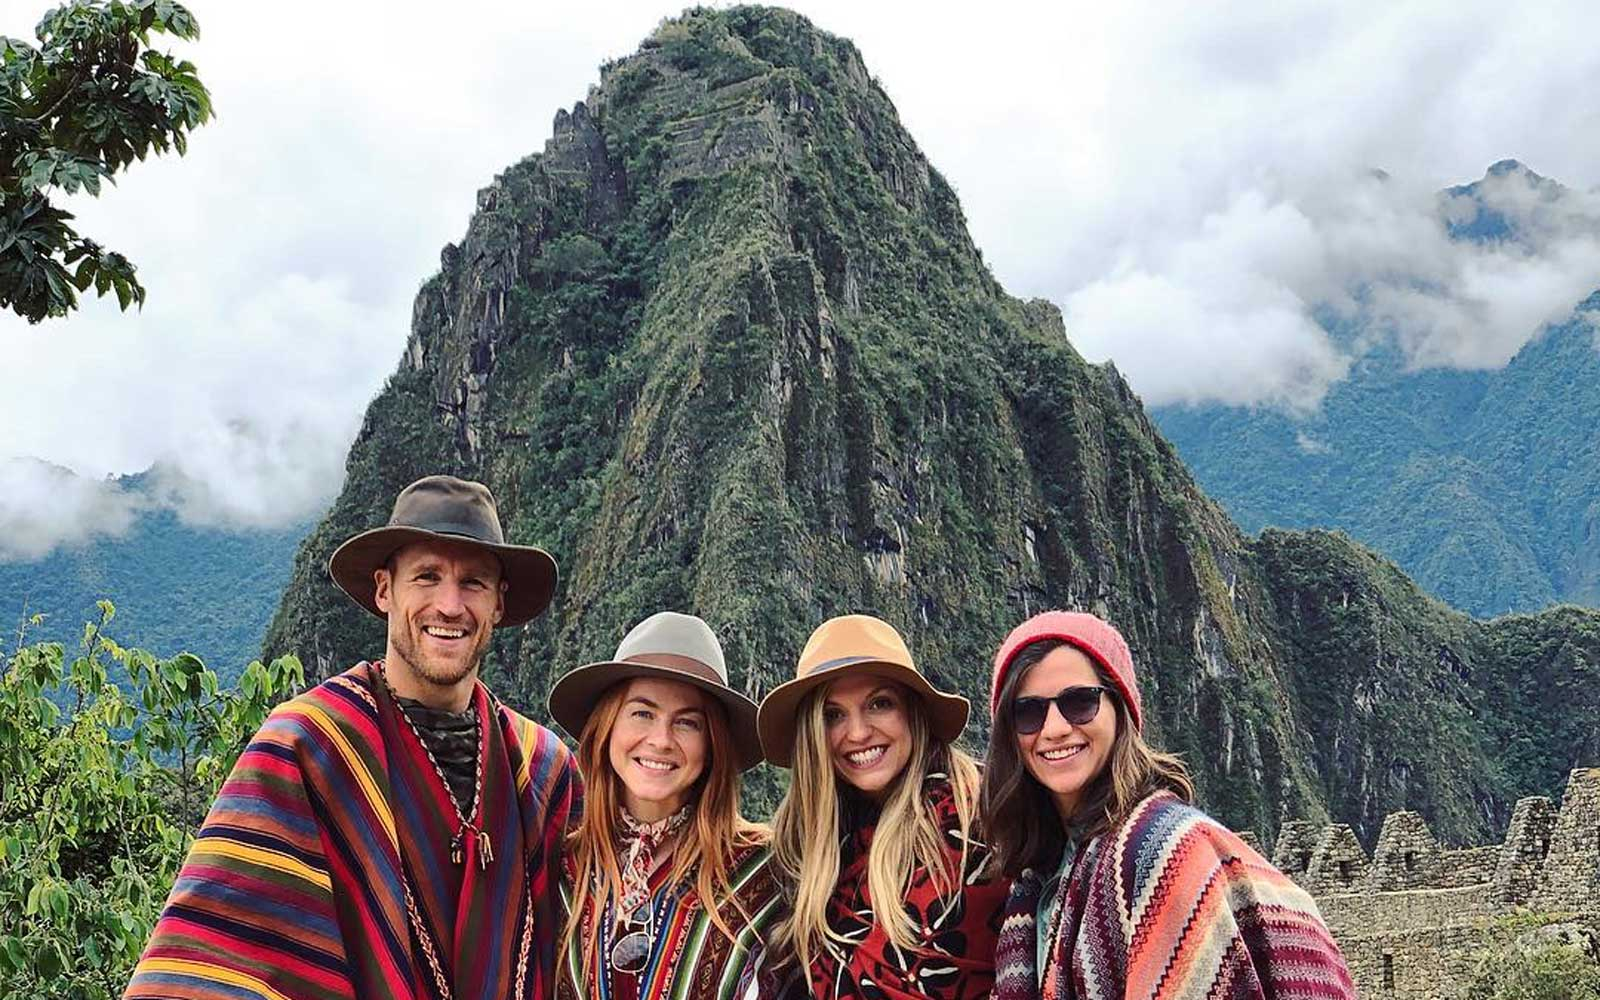 Julianne Hough Took Her Husband to Utah for His Birthday, So He Took Her to Machu Picchu for Hers